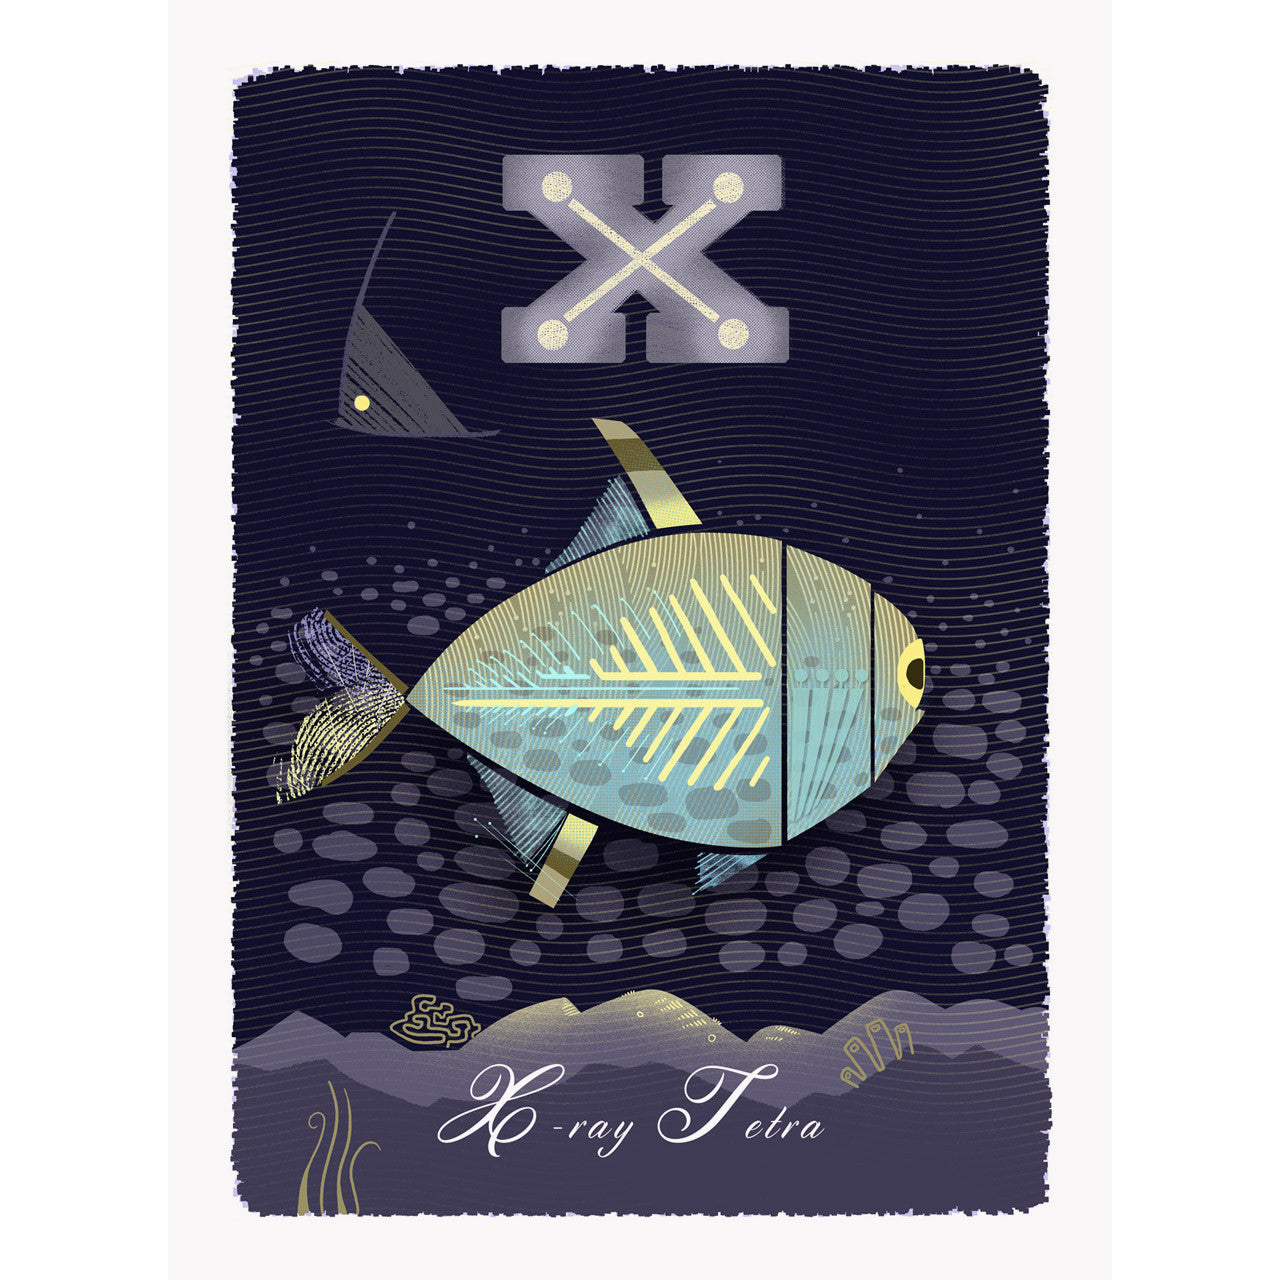 X-ray Tetra print by Graham Carter